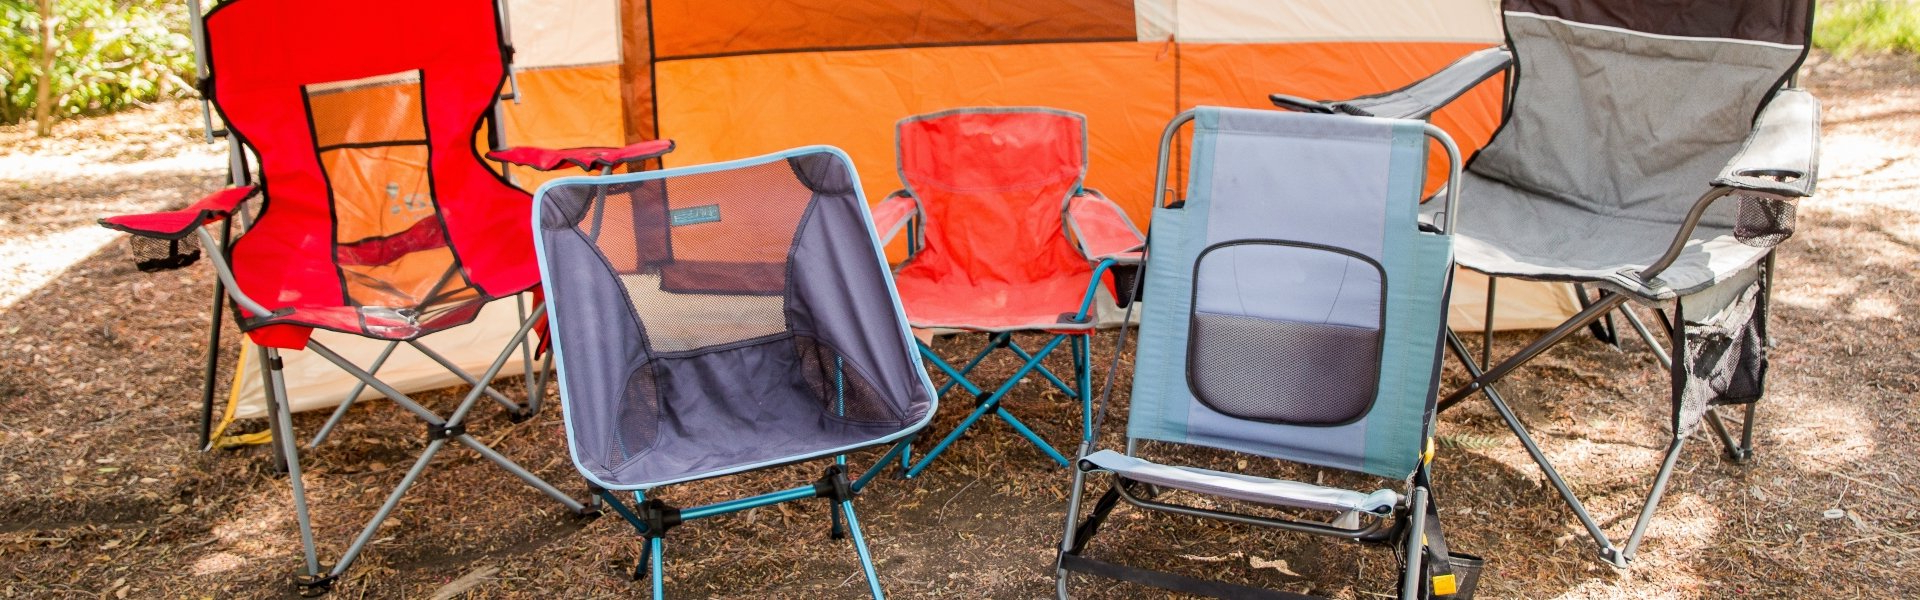 Oversize Wider Armrest Padded Lounge Chairs Inside Most Recently Released 8 Best Heavy Duty Camping Chairs Reviewed In Detail (Oct (View 9 of 25)